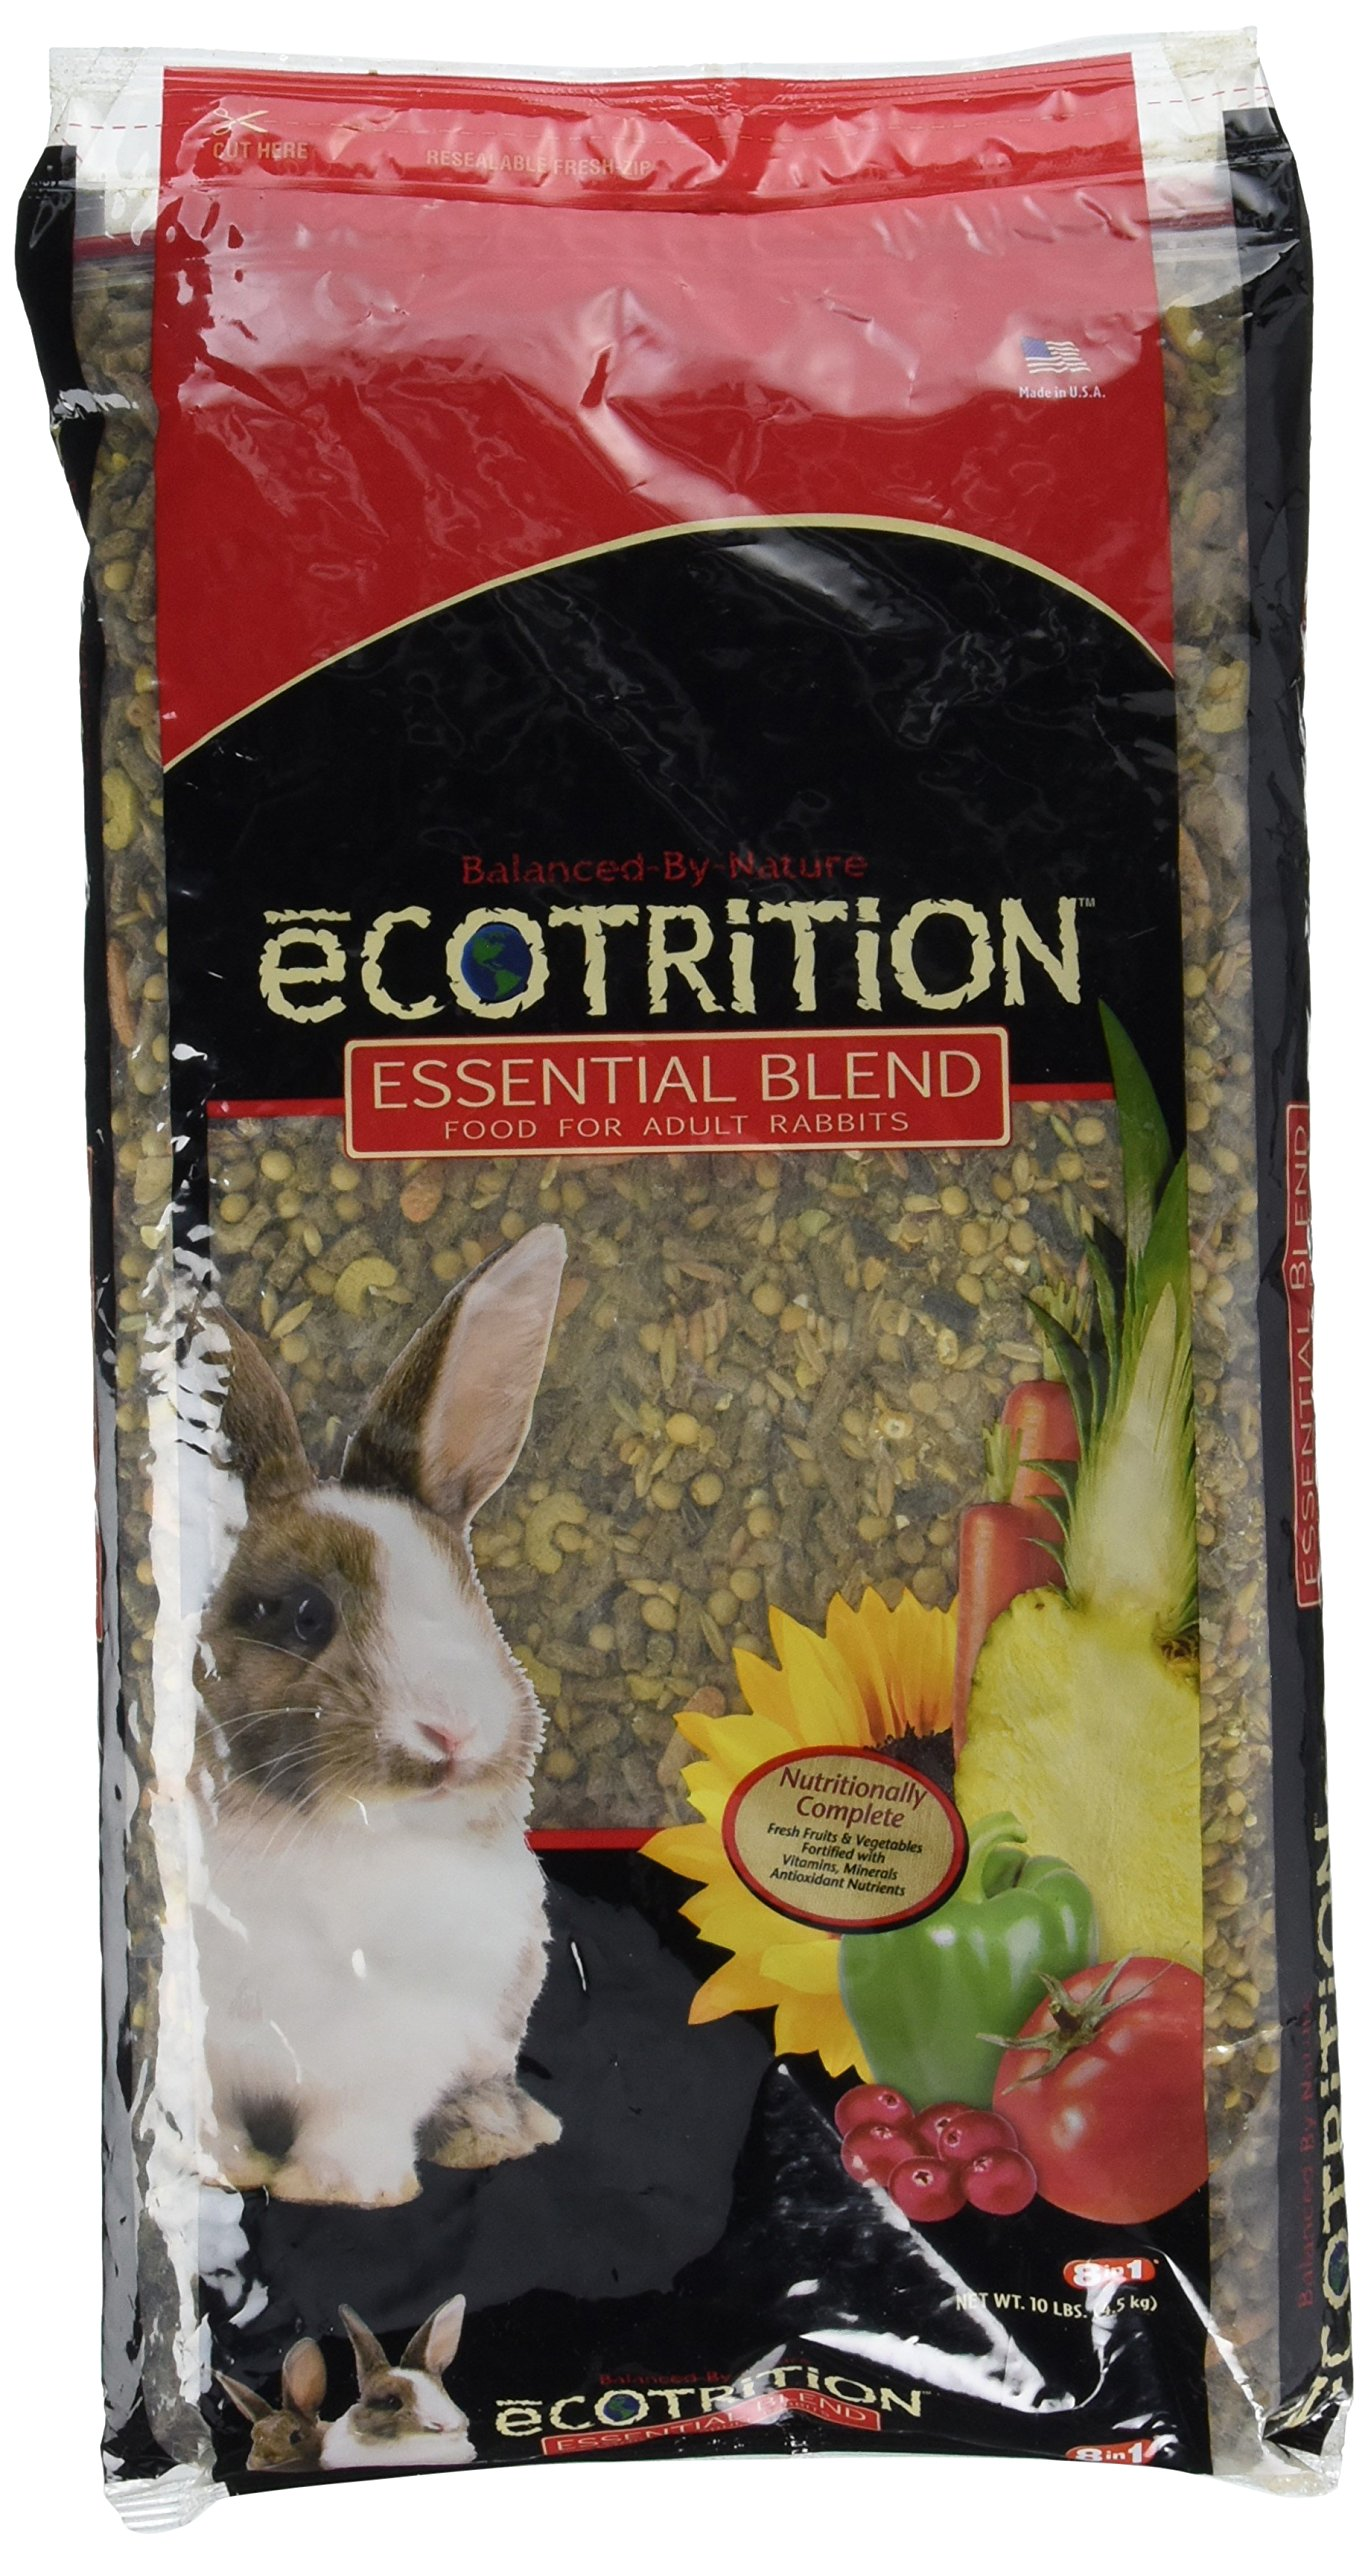 Ecotrition P-84123 Essential Blend For Rabbits, 10 Lb